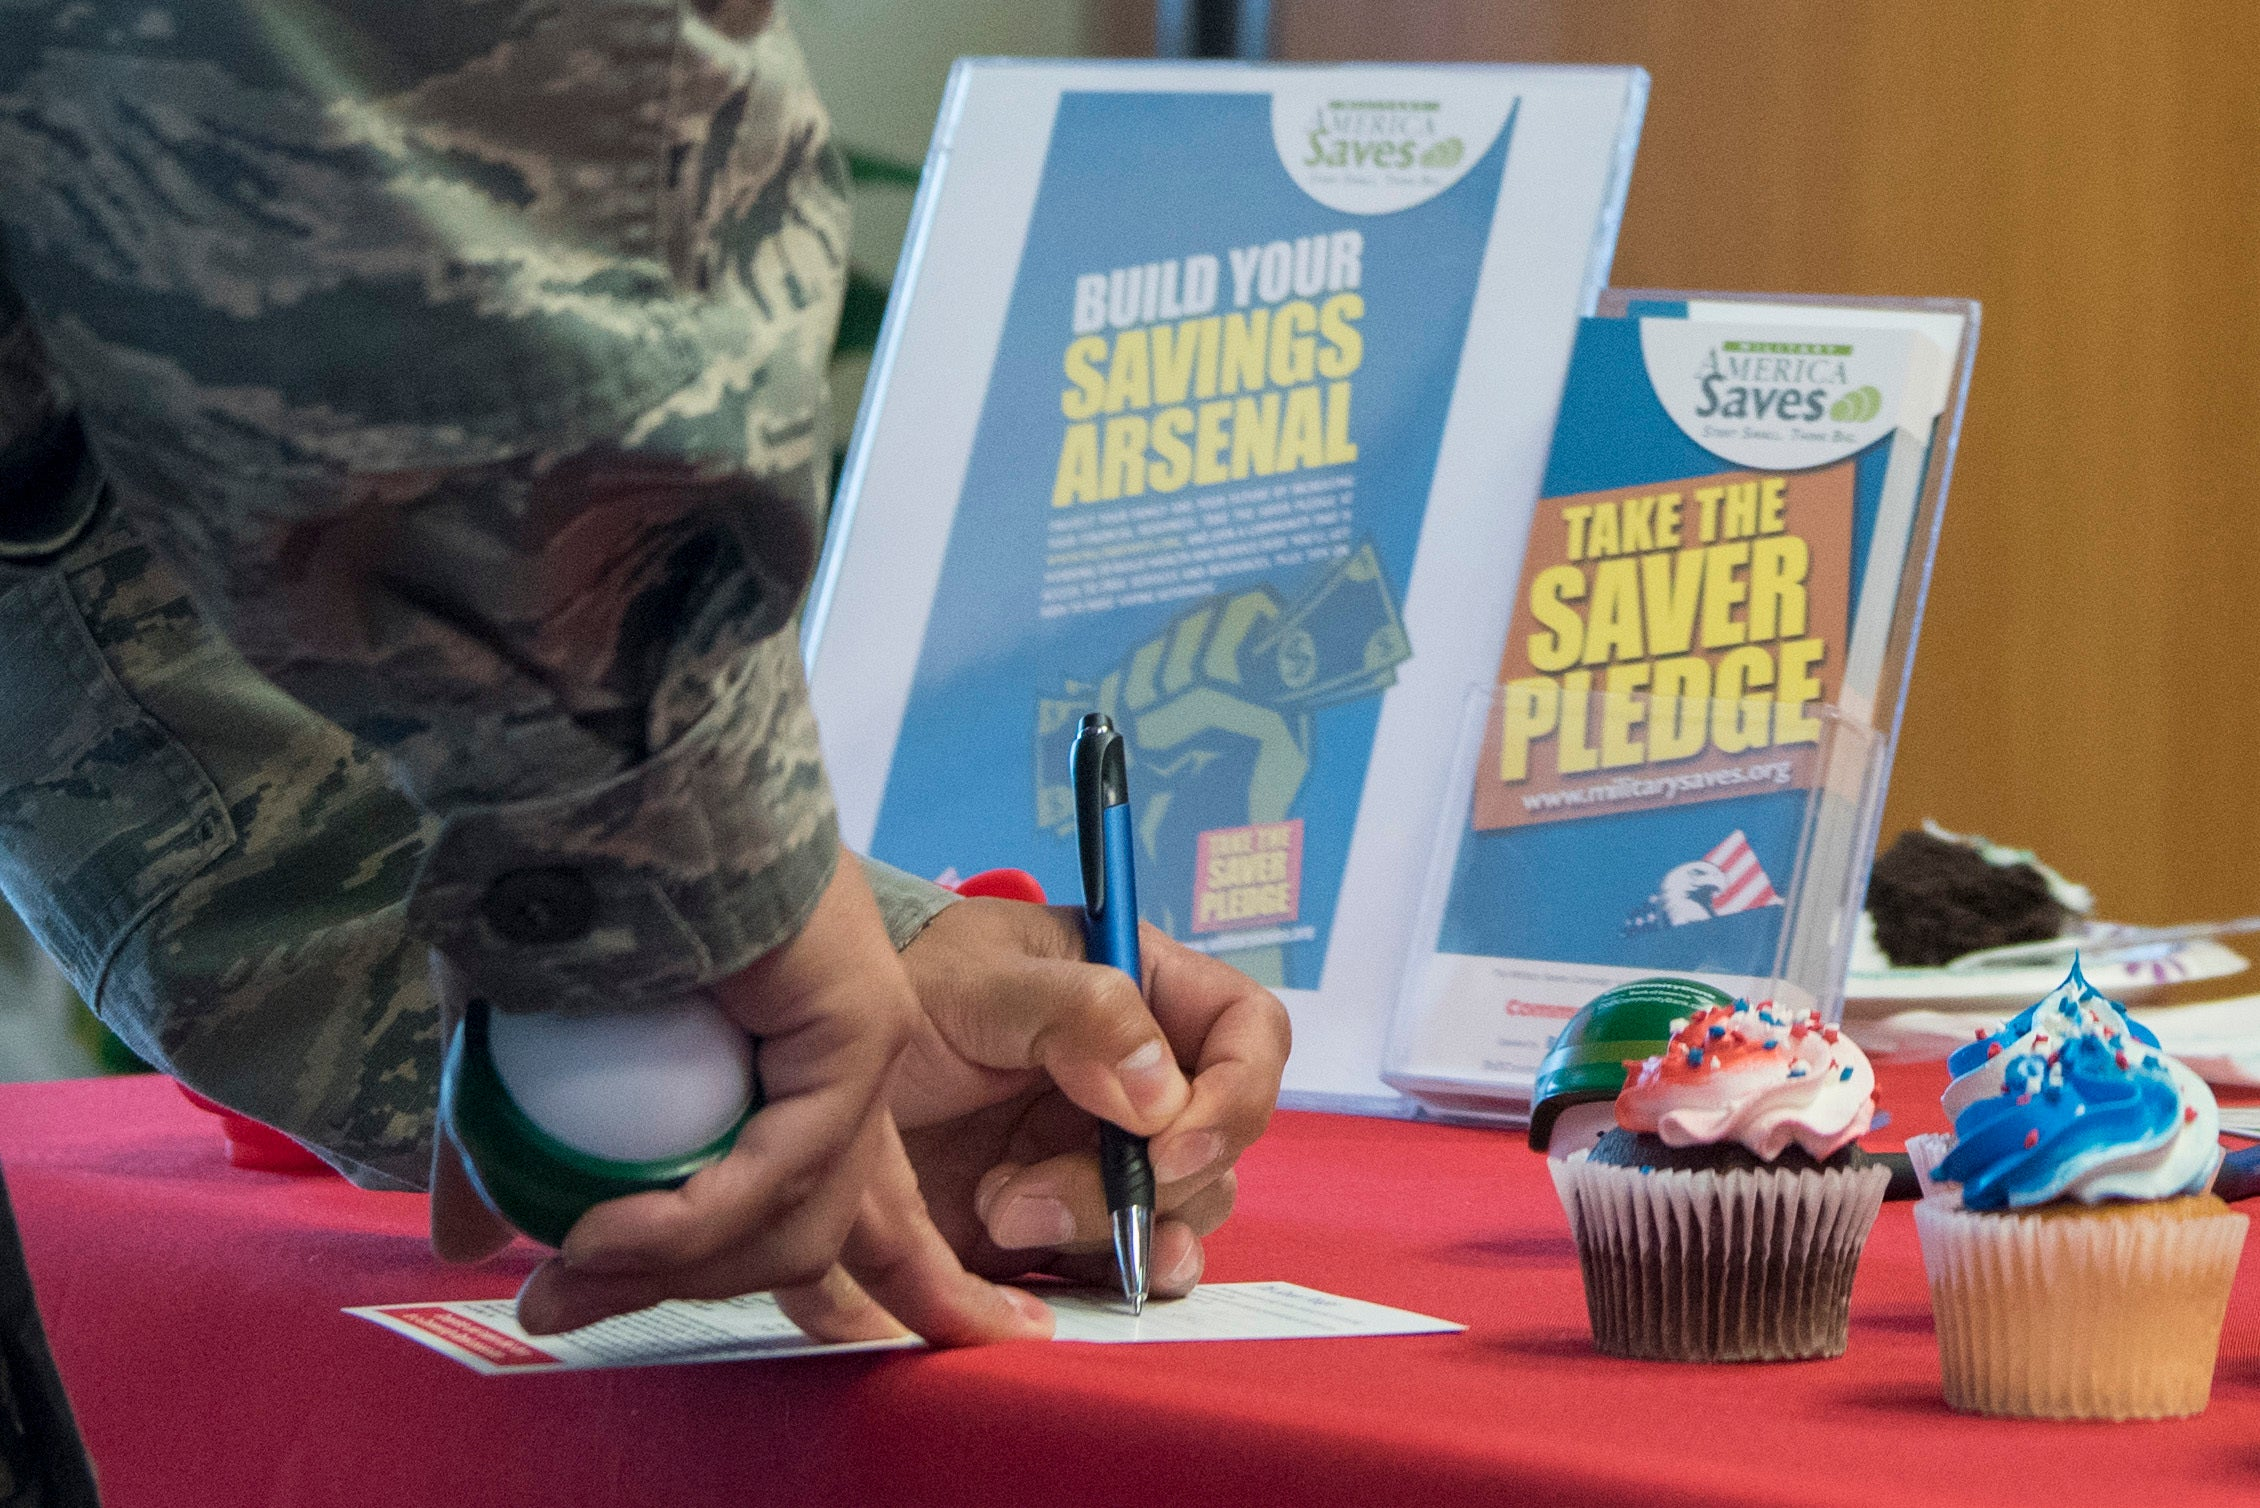 Here are 4 easy ways to participate in Military Saves Week